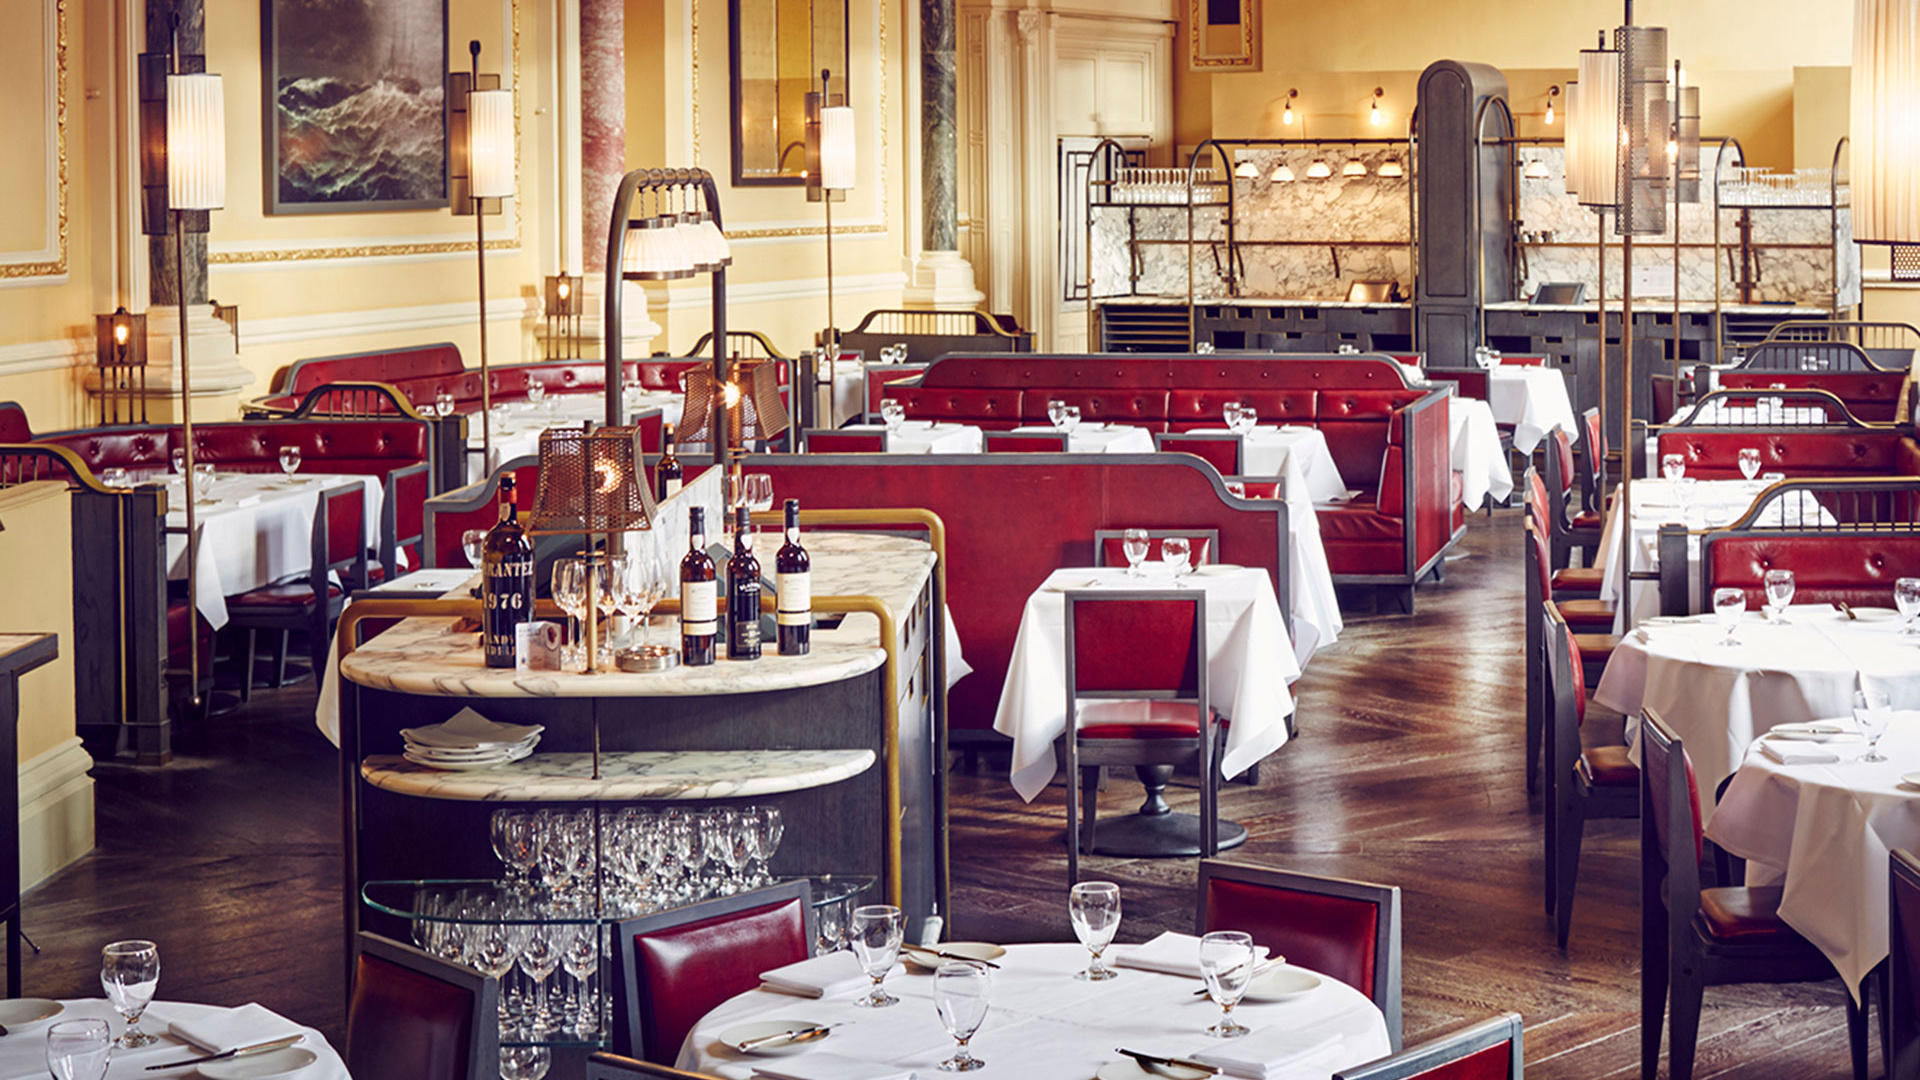 The dining room at The Gilbert Scott